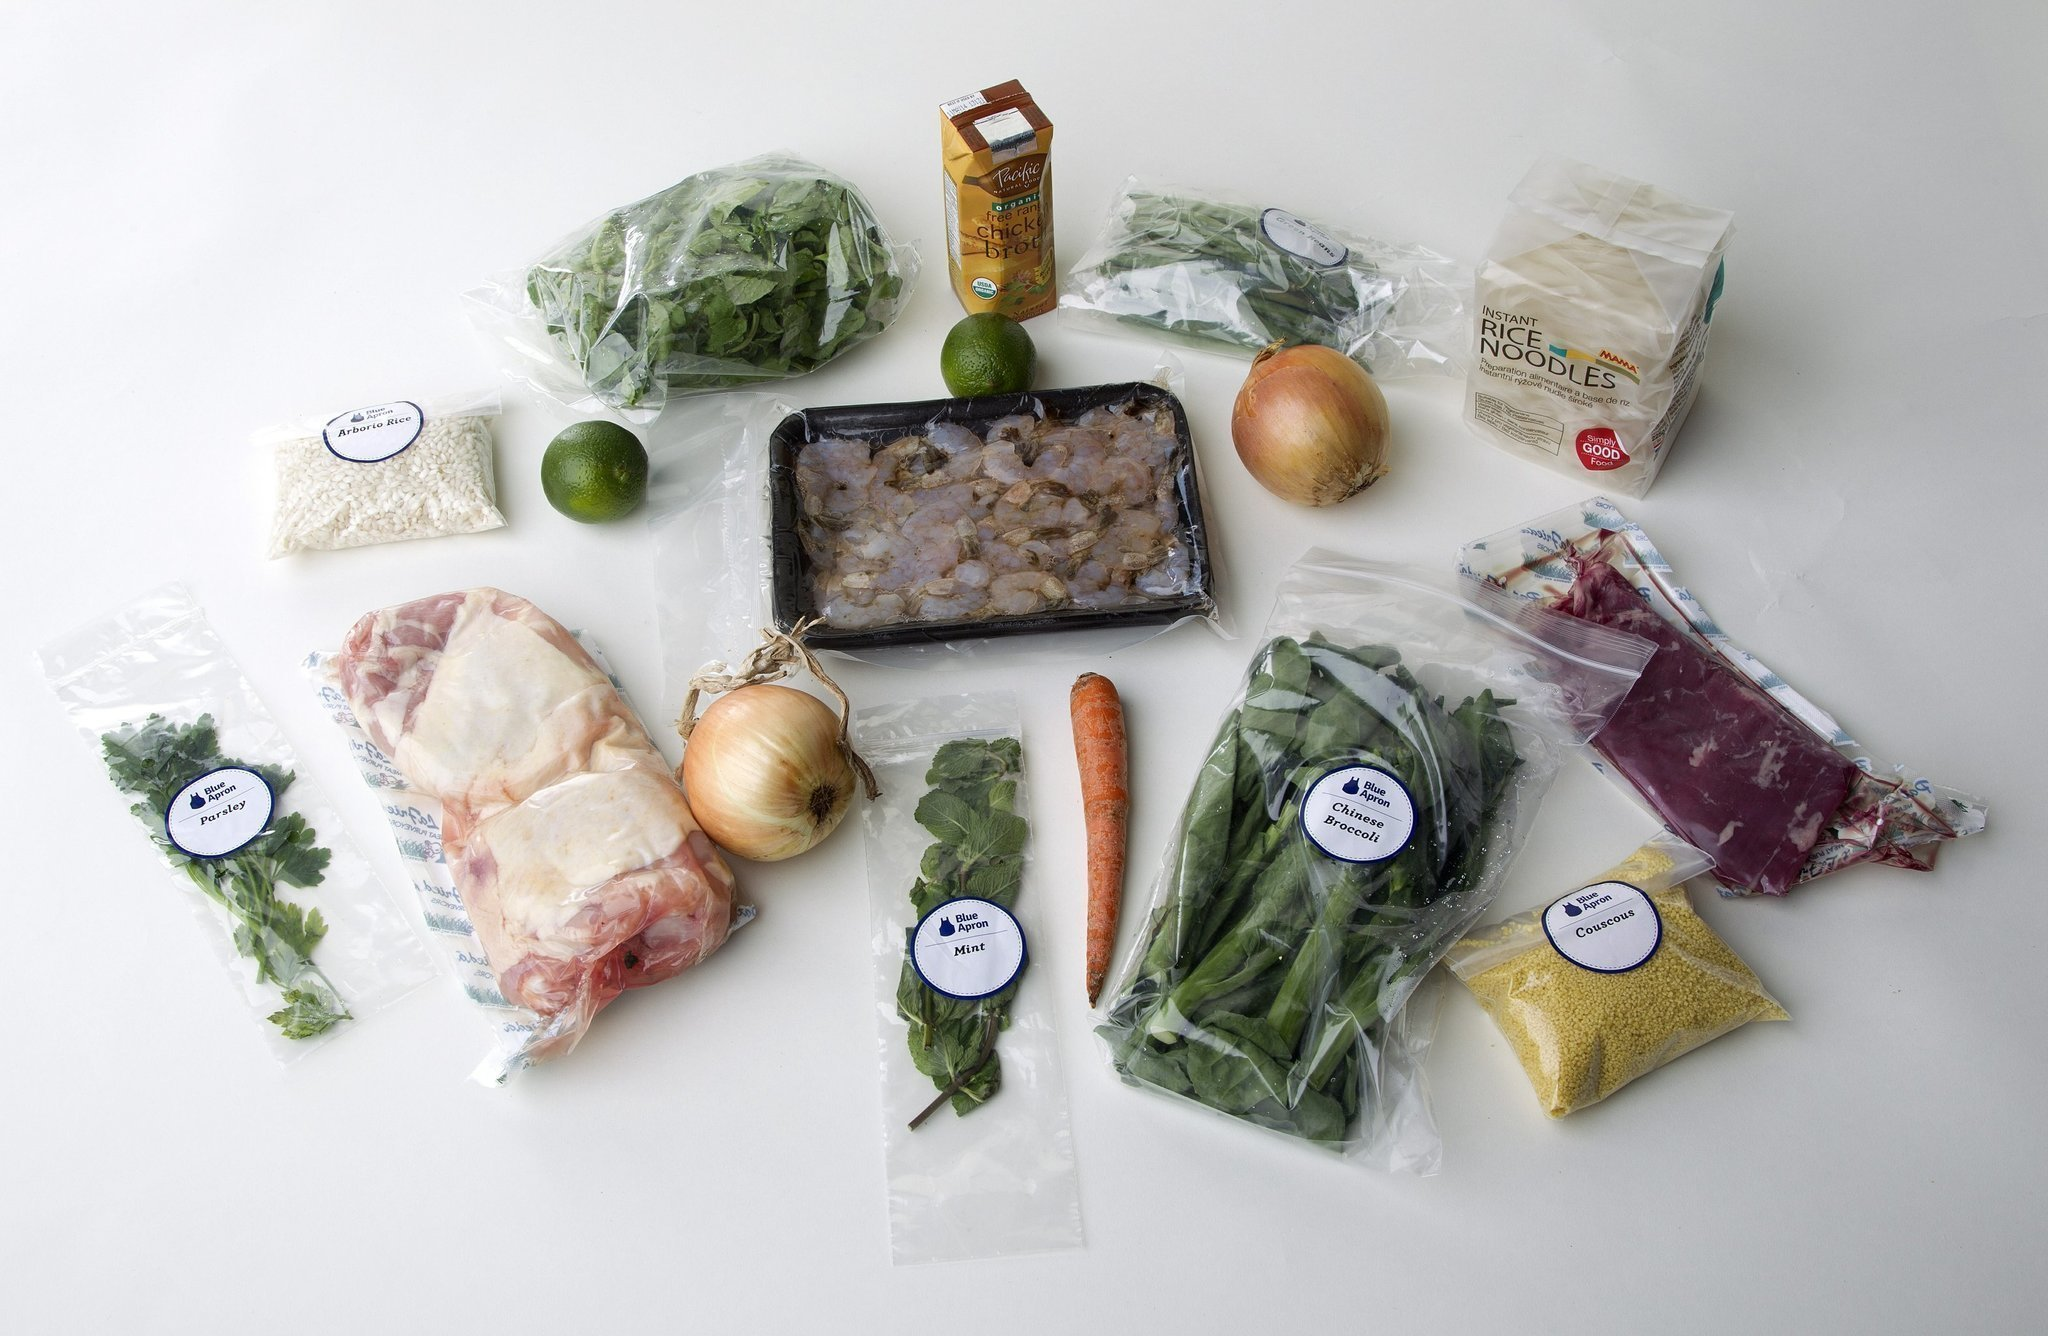 Blue apron target market